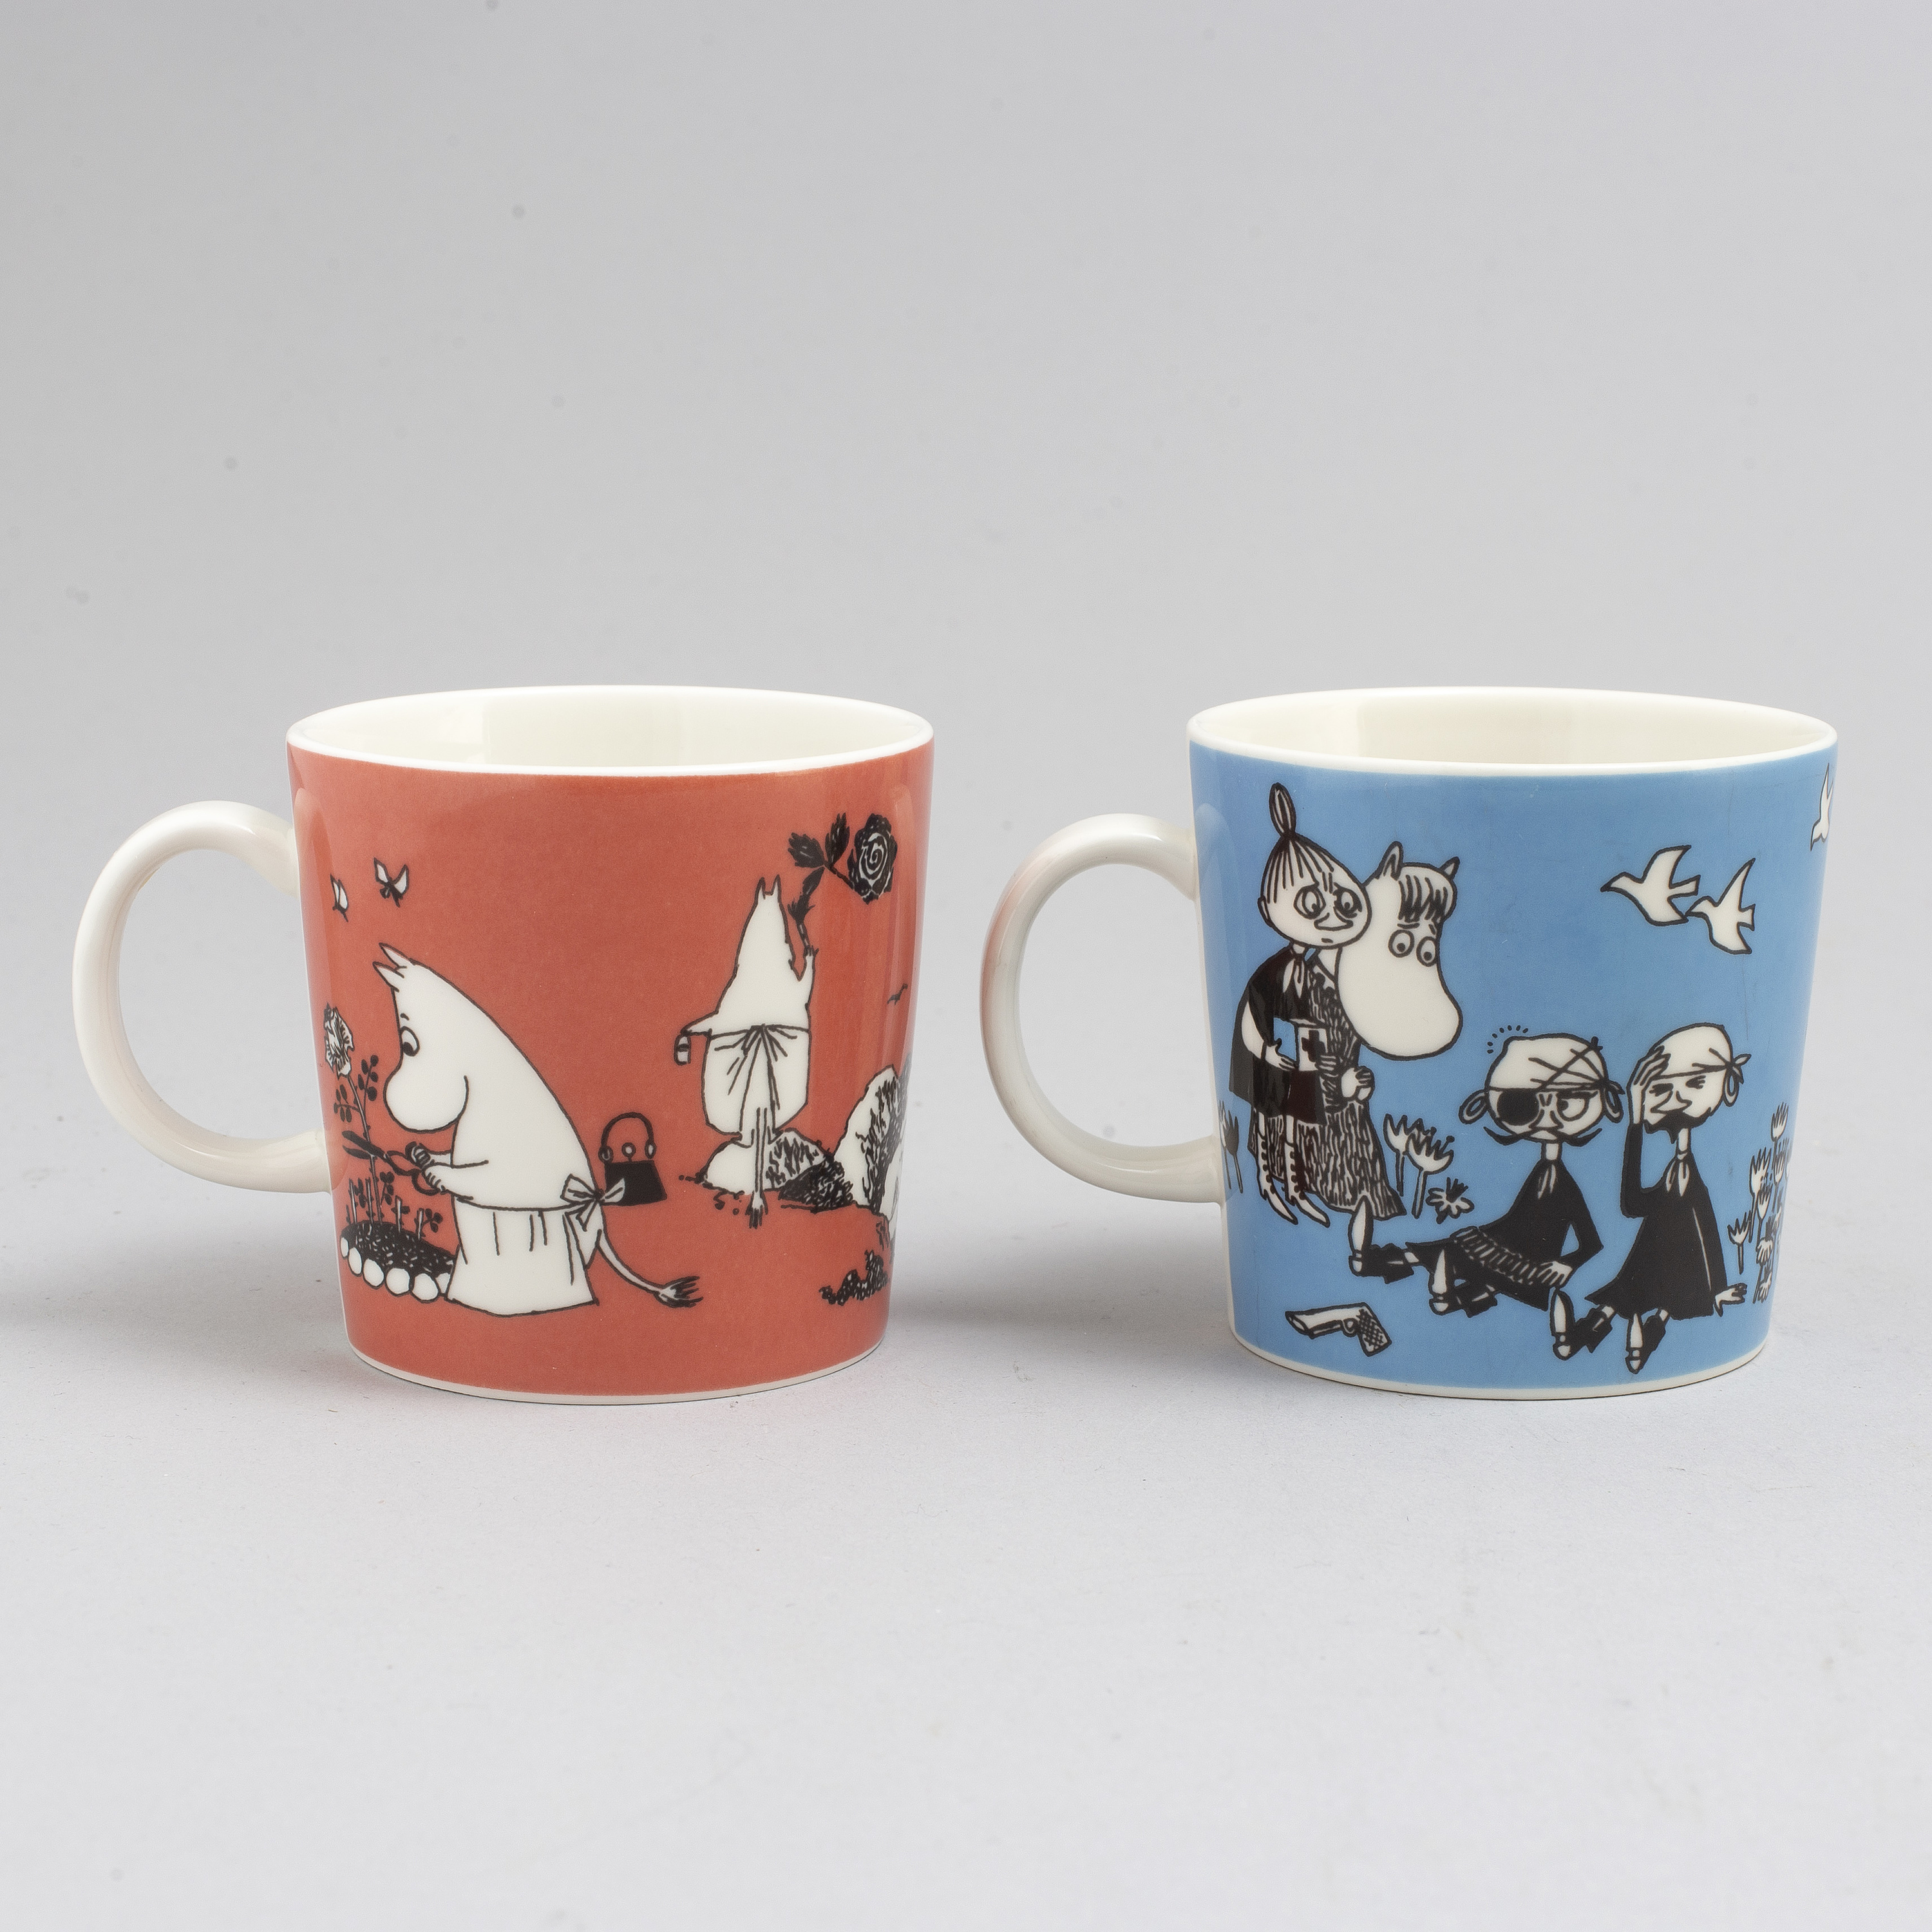 Two porcelain Moomin Characters mugs from Arabia, Finland